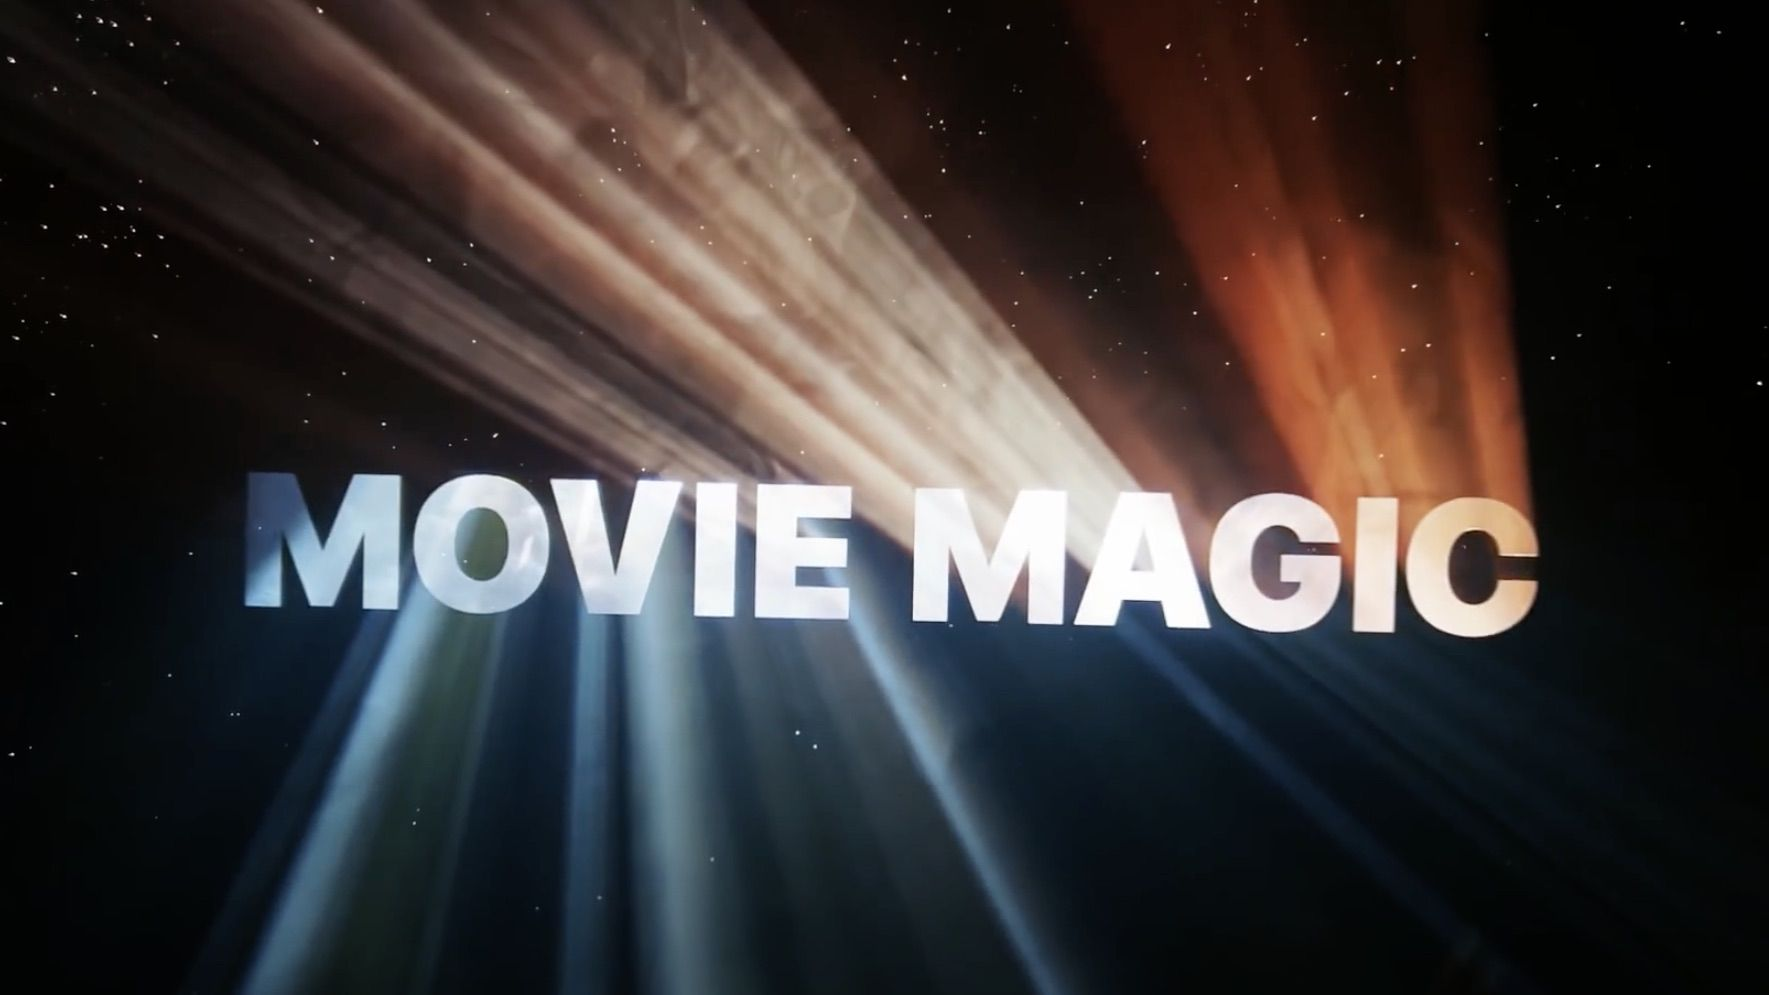 Apple Shares New 'Movie Magic' Shot on iPhone 13 Pro Video